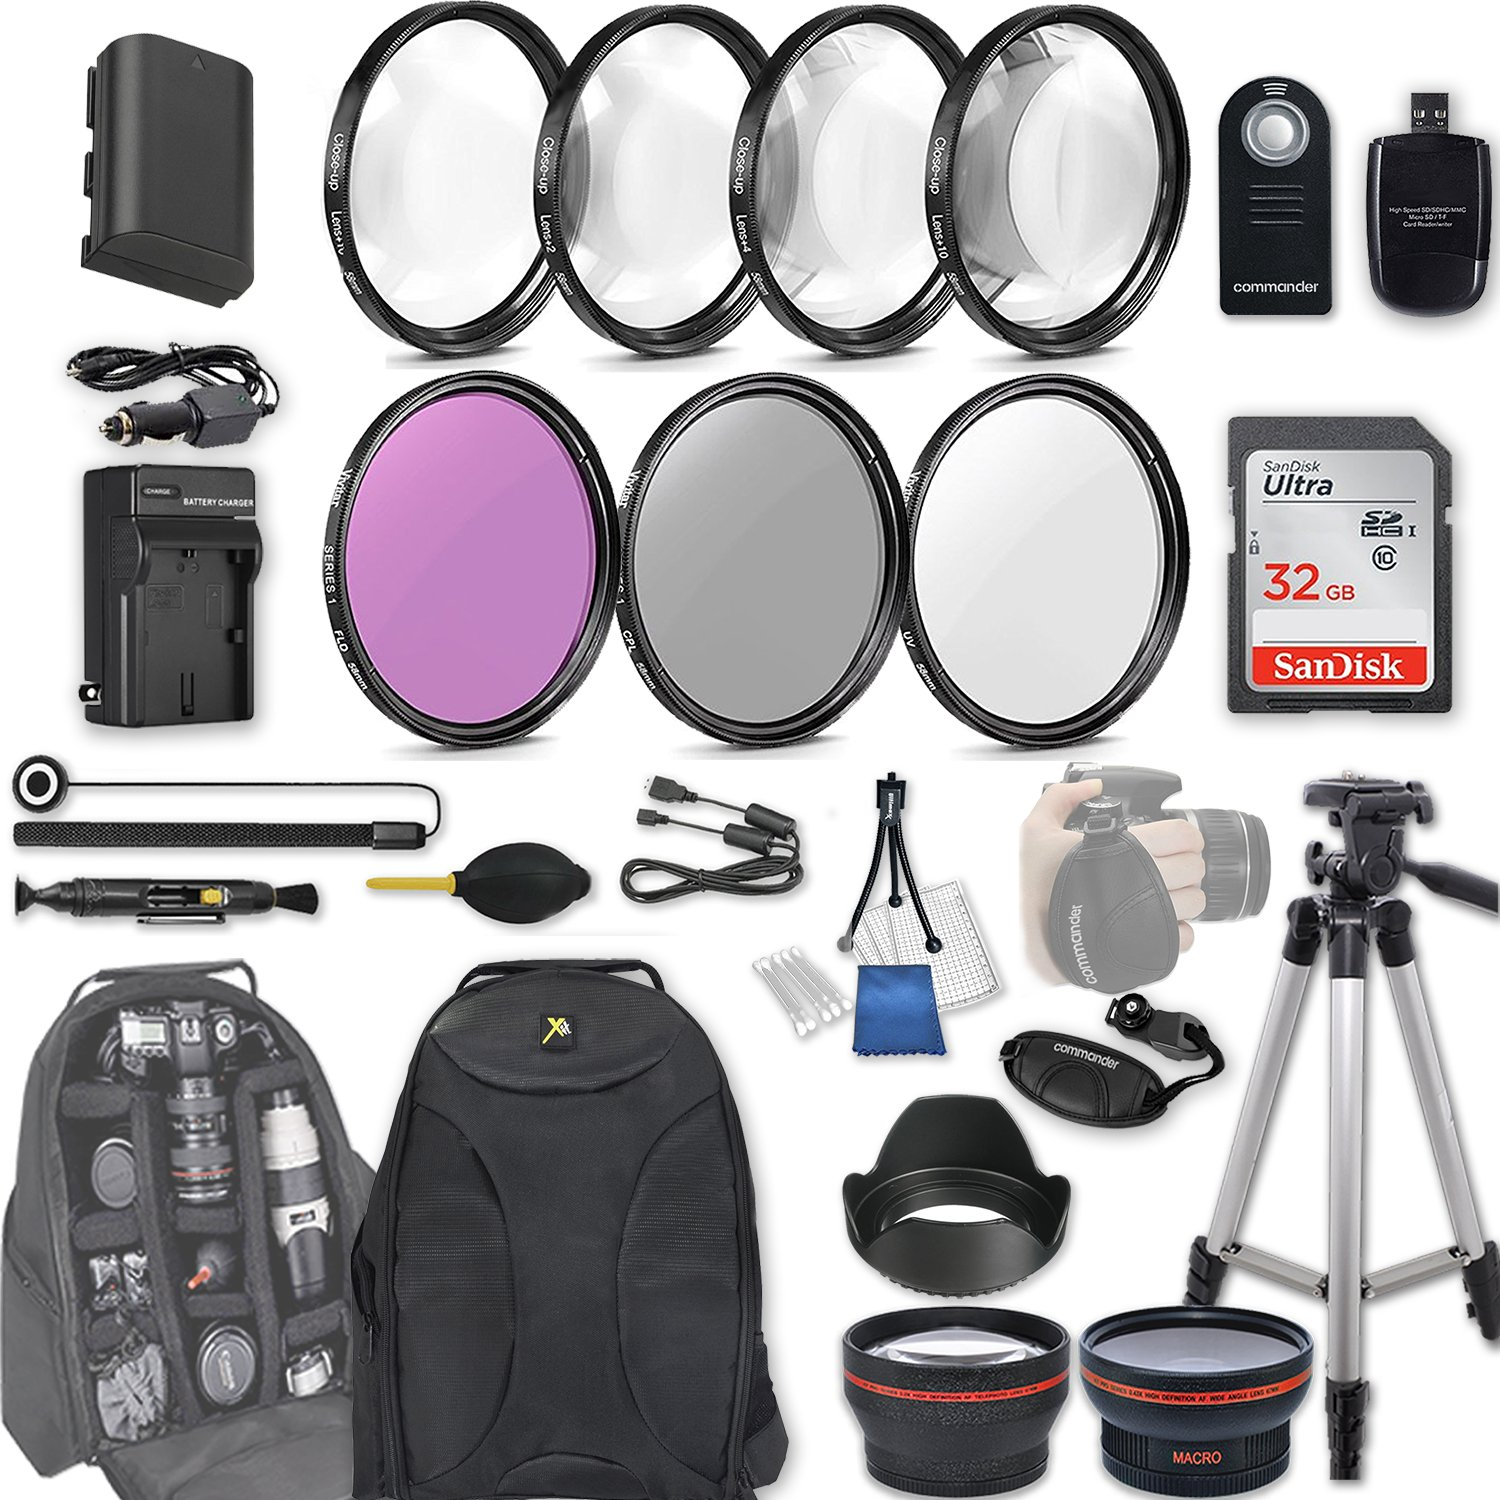 58mm 28 Pc Accessory Kit for Canon EOS Rebel 70D, 80D, DSLRs with 0.43x Wide Angle Lens, 2.2x Telephoto Lens, 32GB Sandisk SD, Filter & Macro Kits, Backpack Case, and More by 33rd Street